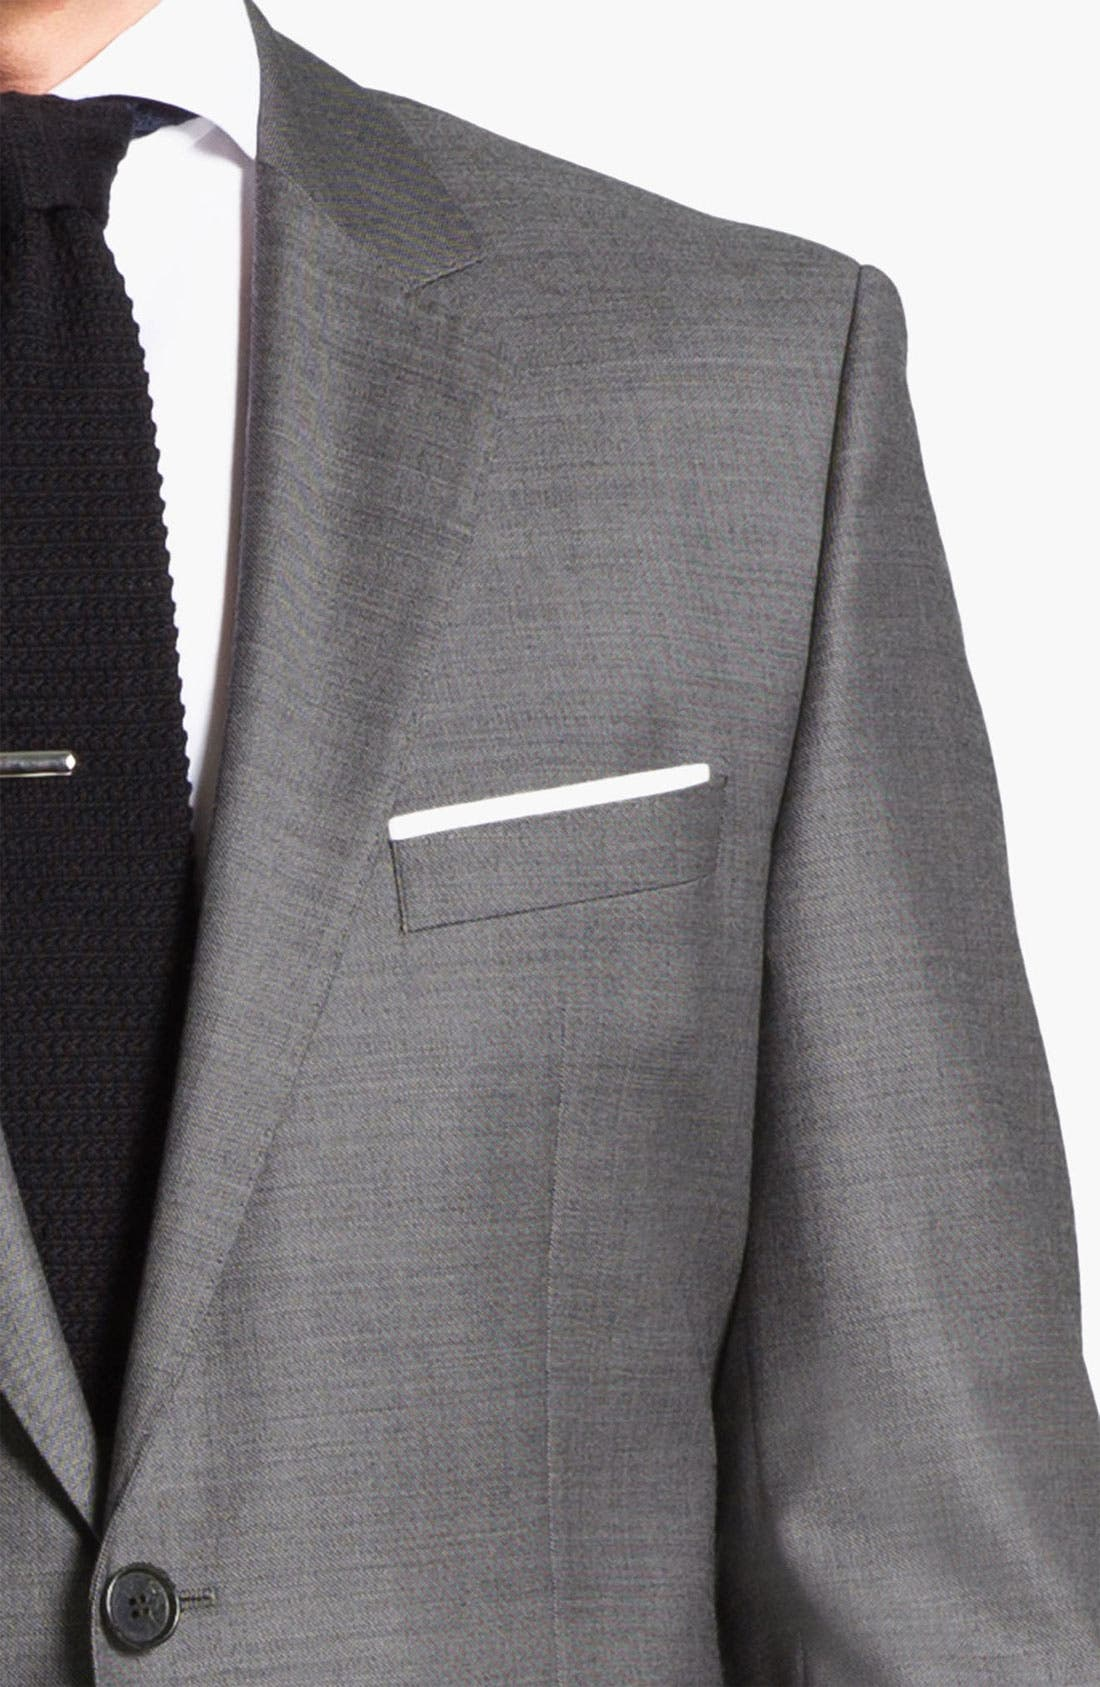 BOSS HUGO BOSS 'James/Sharp' Trim Fit Wool Suit,                             Alternate thumbnail 3, color,                             020